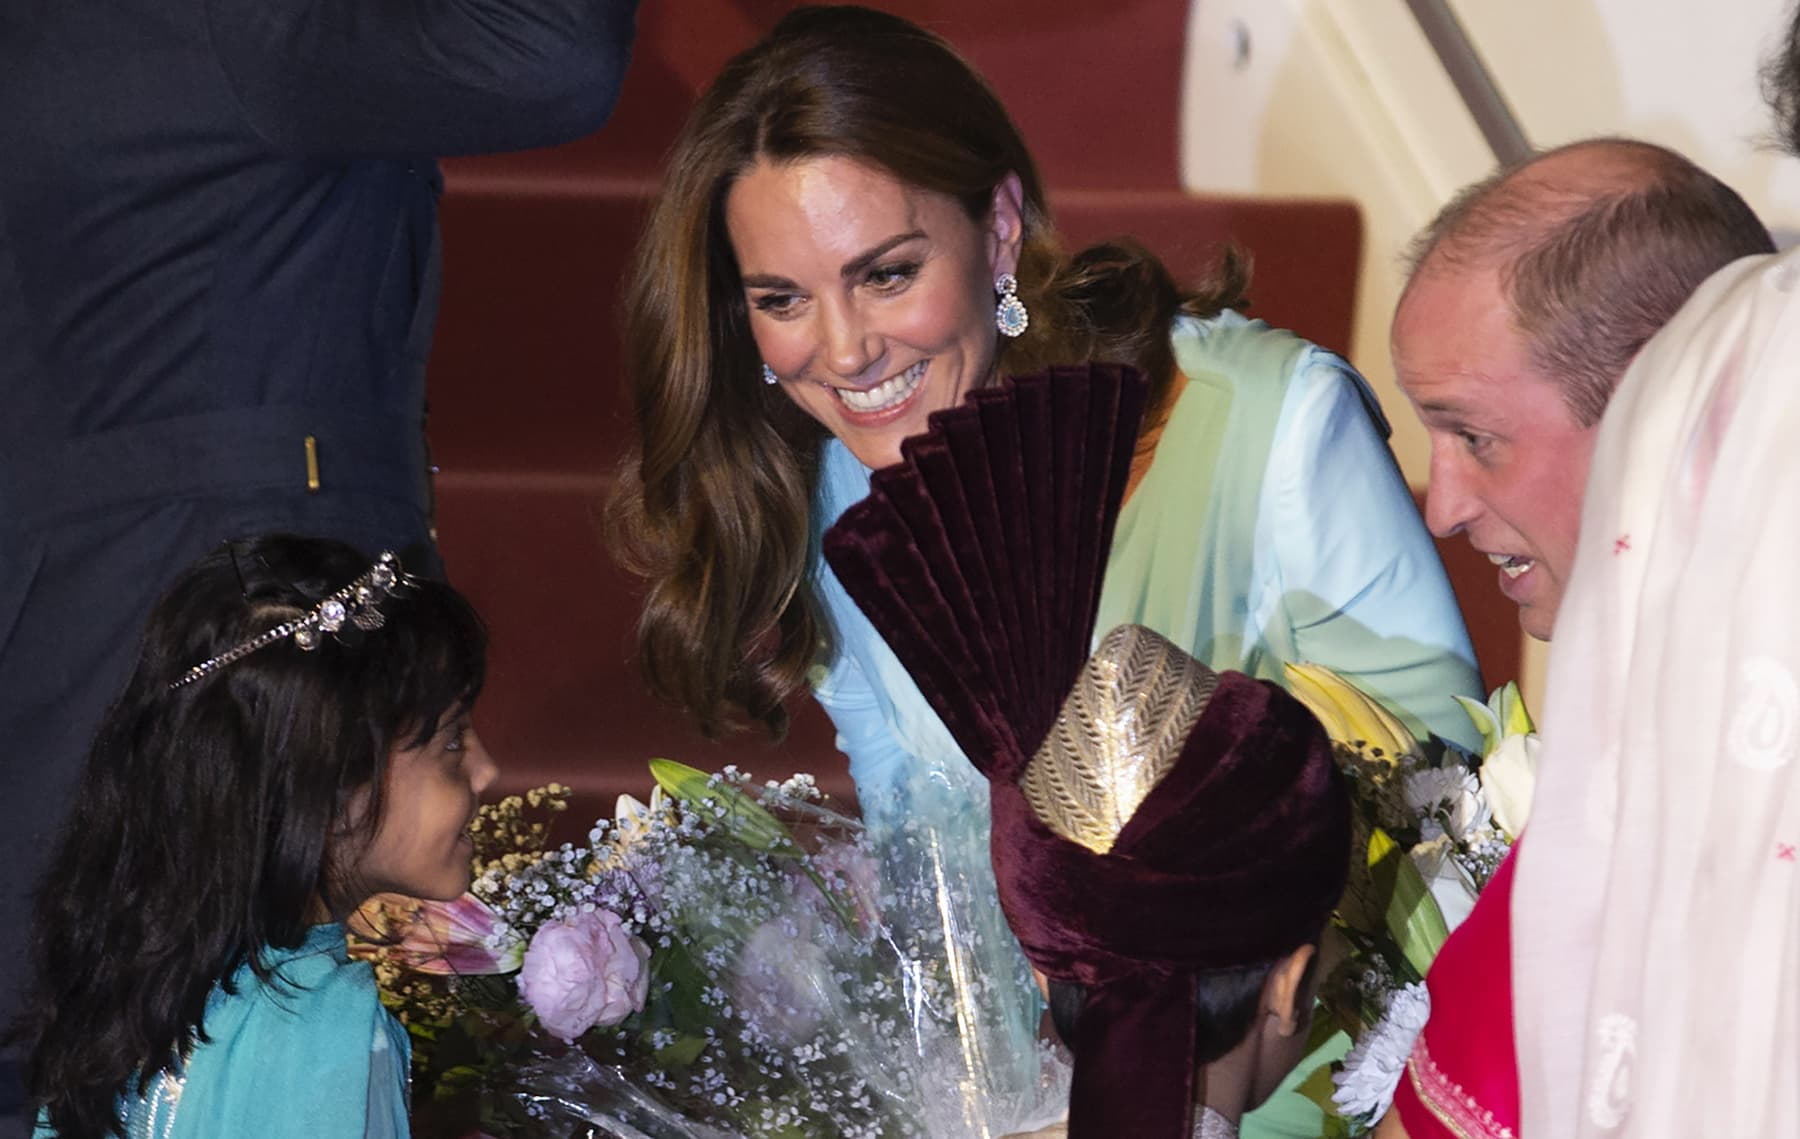 Prince William and his wife Kate receive flowers from a child upon their arrival at the Nur Khan airbase in Islamabad on Monday. — AP